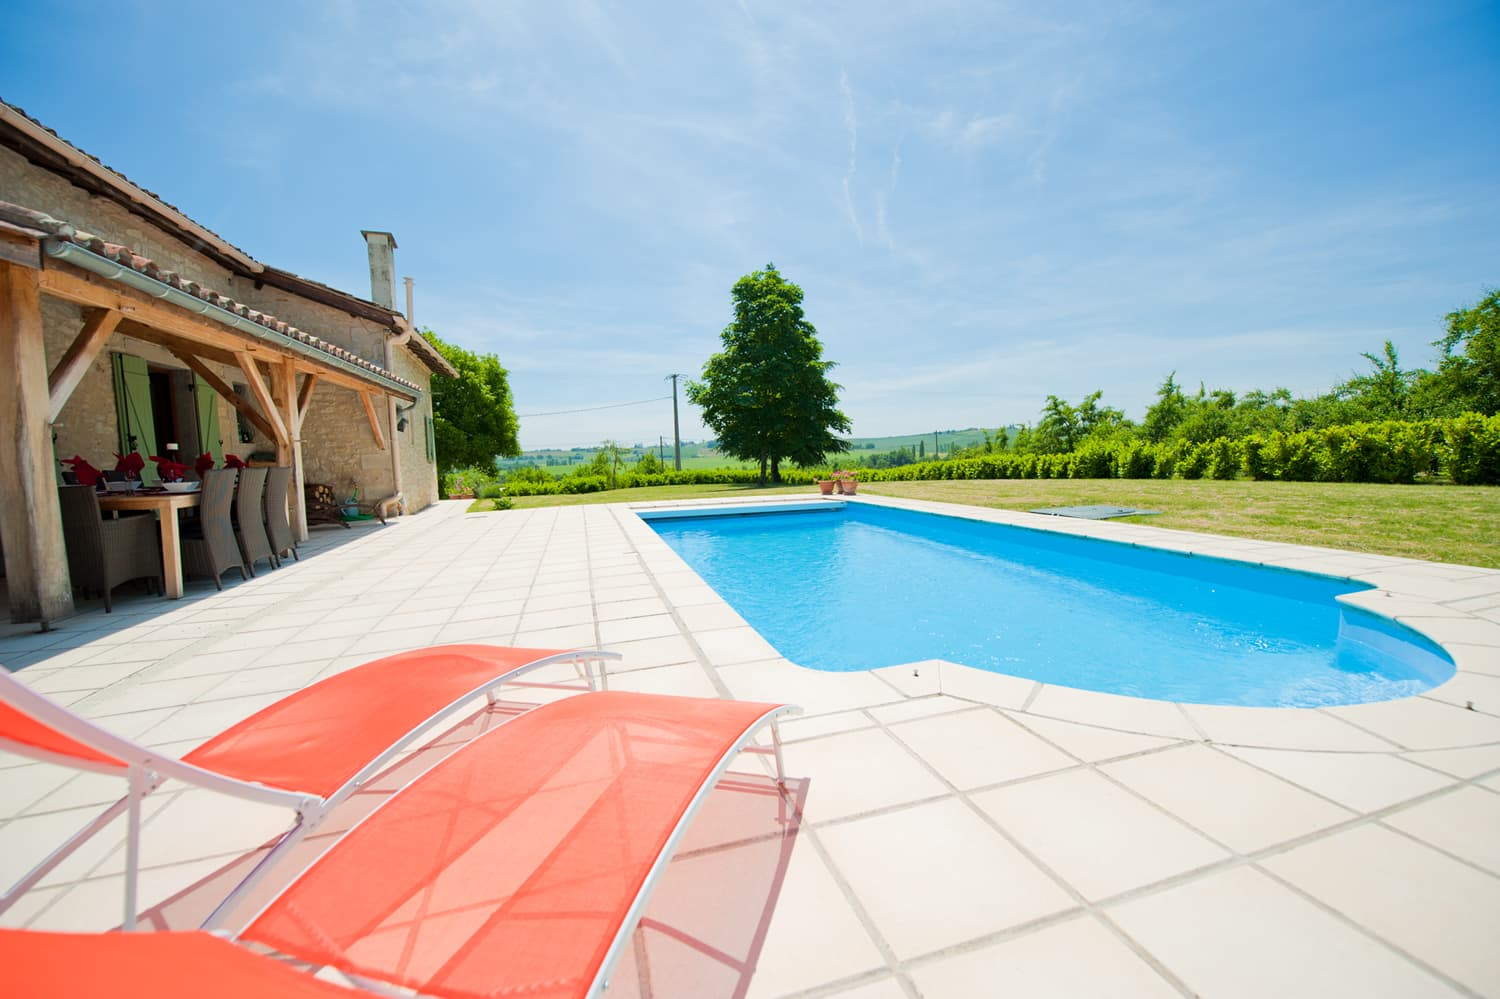 Rental home in Dordogne with private, heated pool and terrace